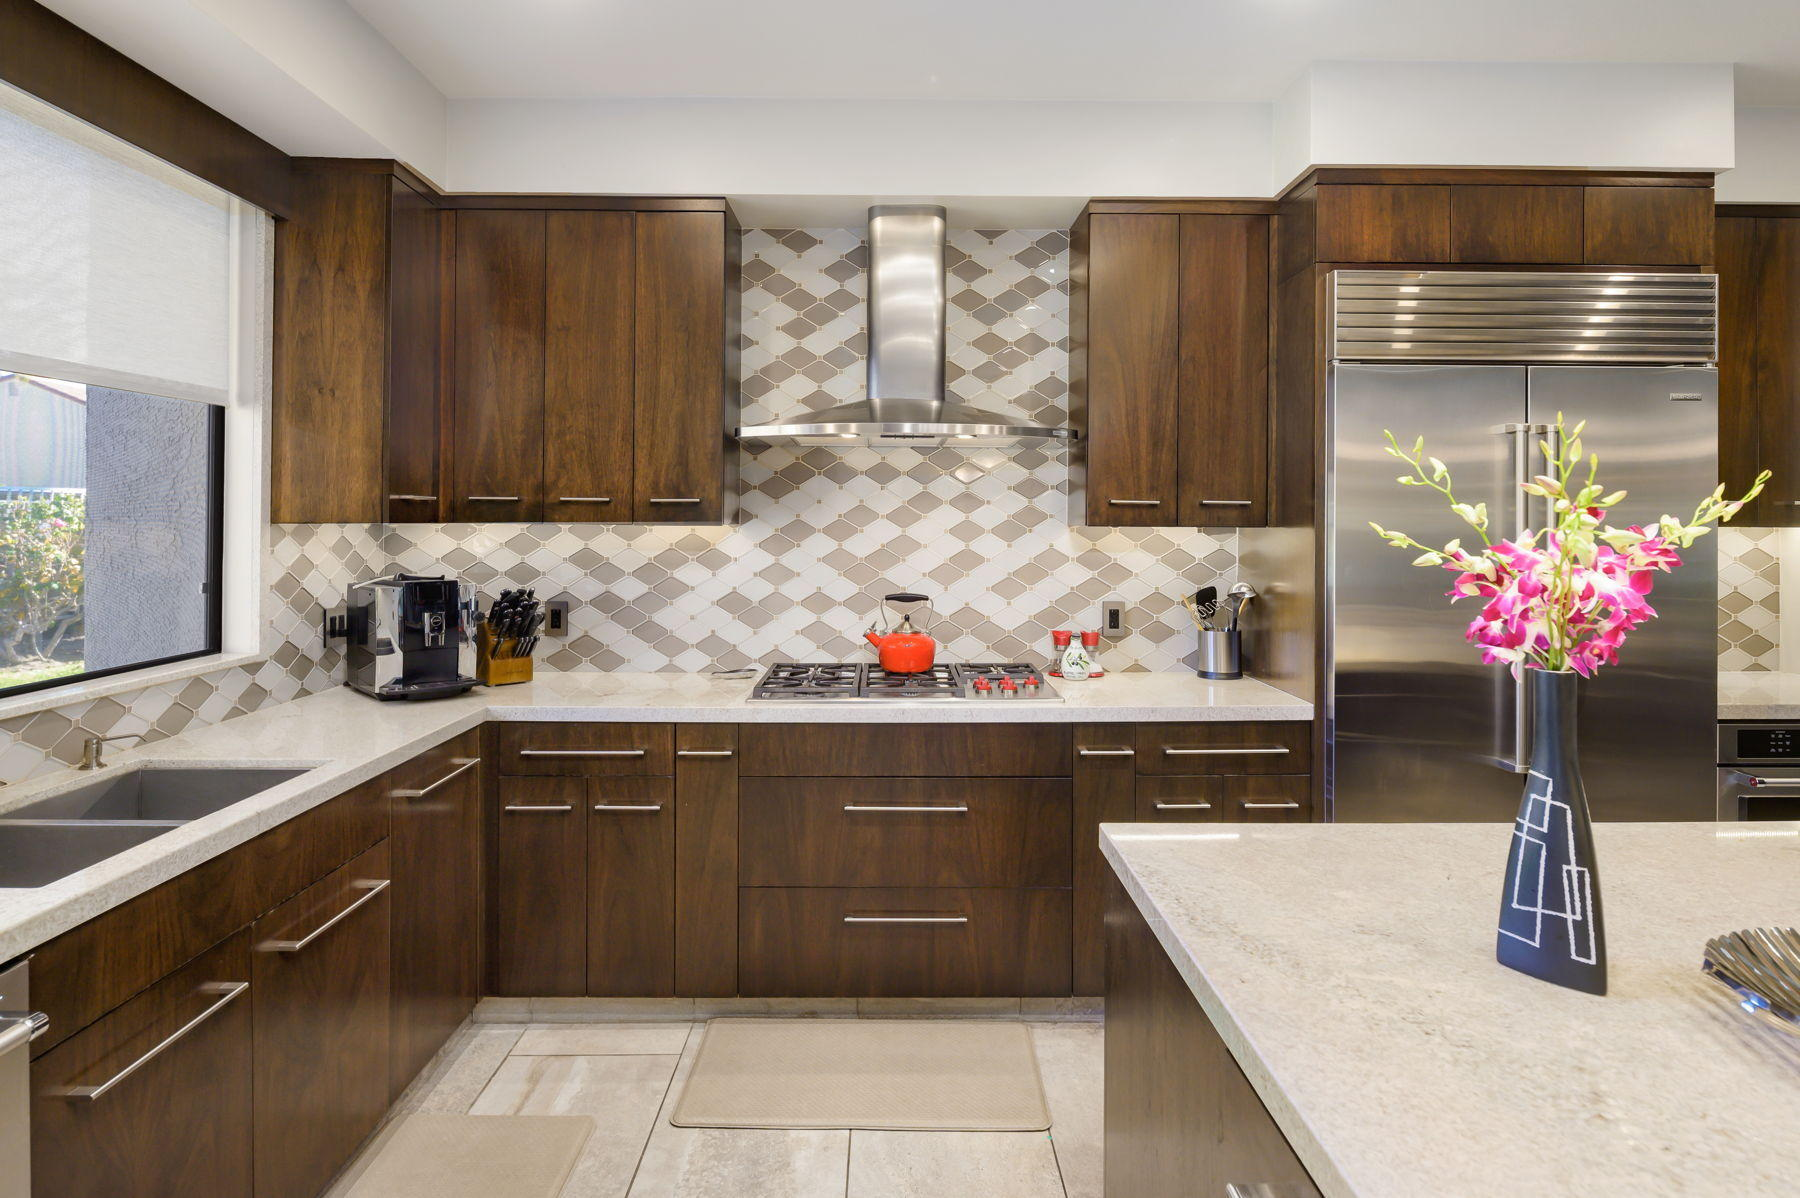 10616 S Racquet Club Drive, Rancho Mirage, California 92270, 3 Bedrooms Bedrooms, ,4 BathroomsBathrooms,Residential,For Sale,10616 S Racquet Club Drive,219037365